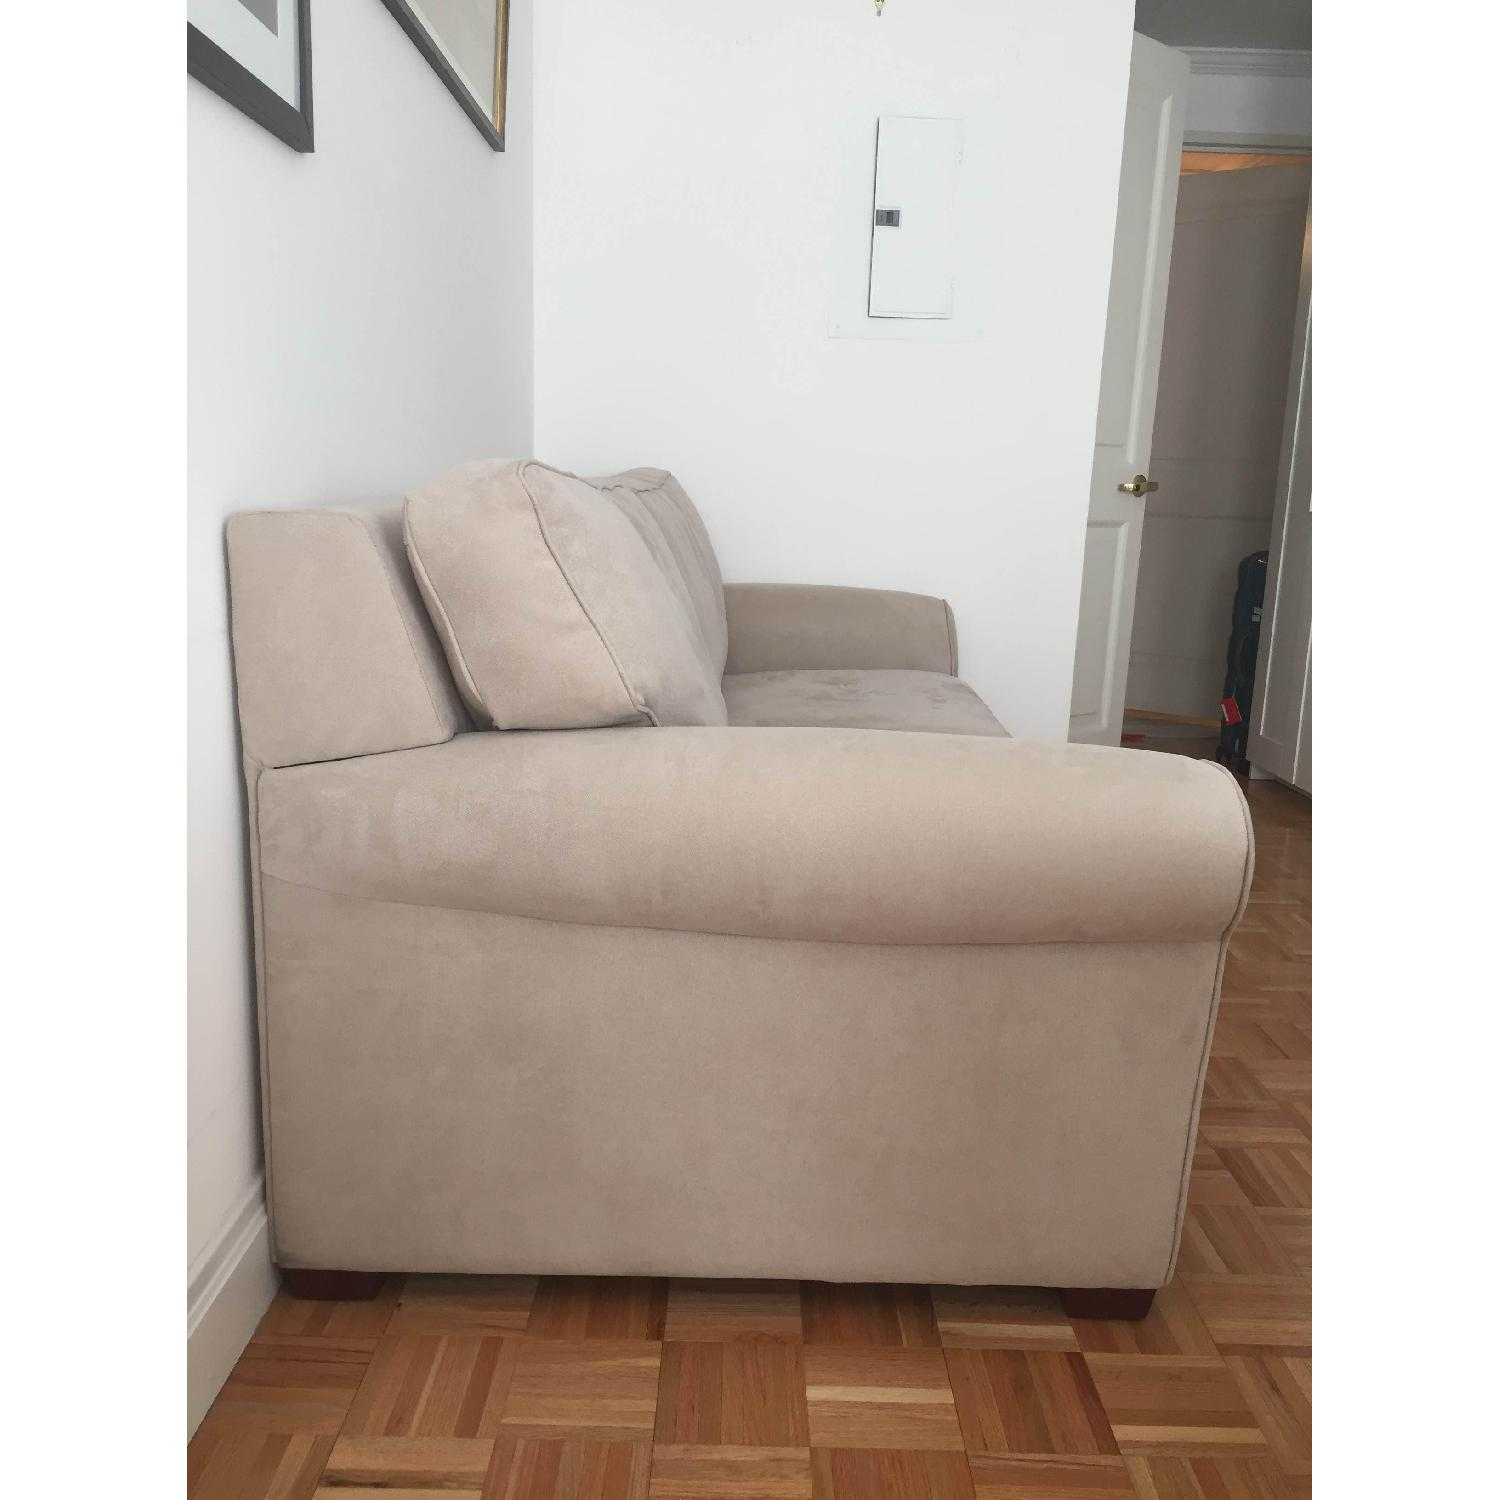 Crate & Barrel Pull Out Couch - image-2